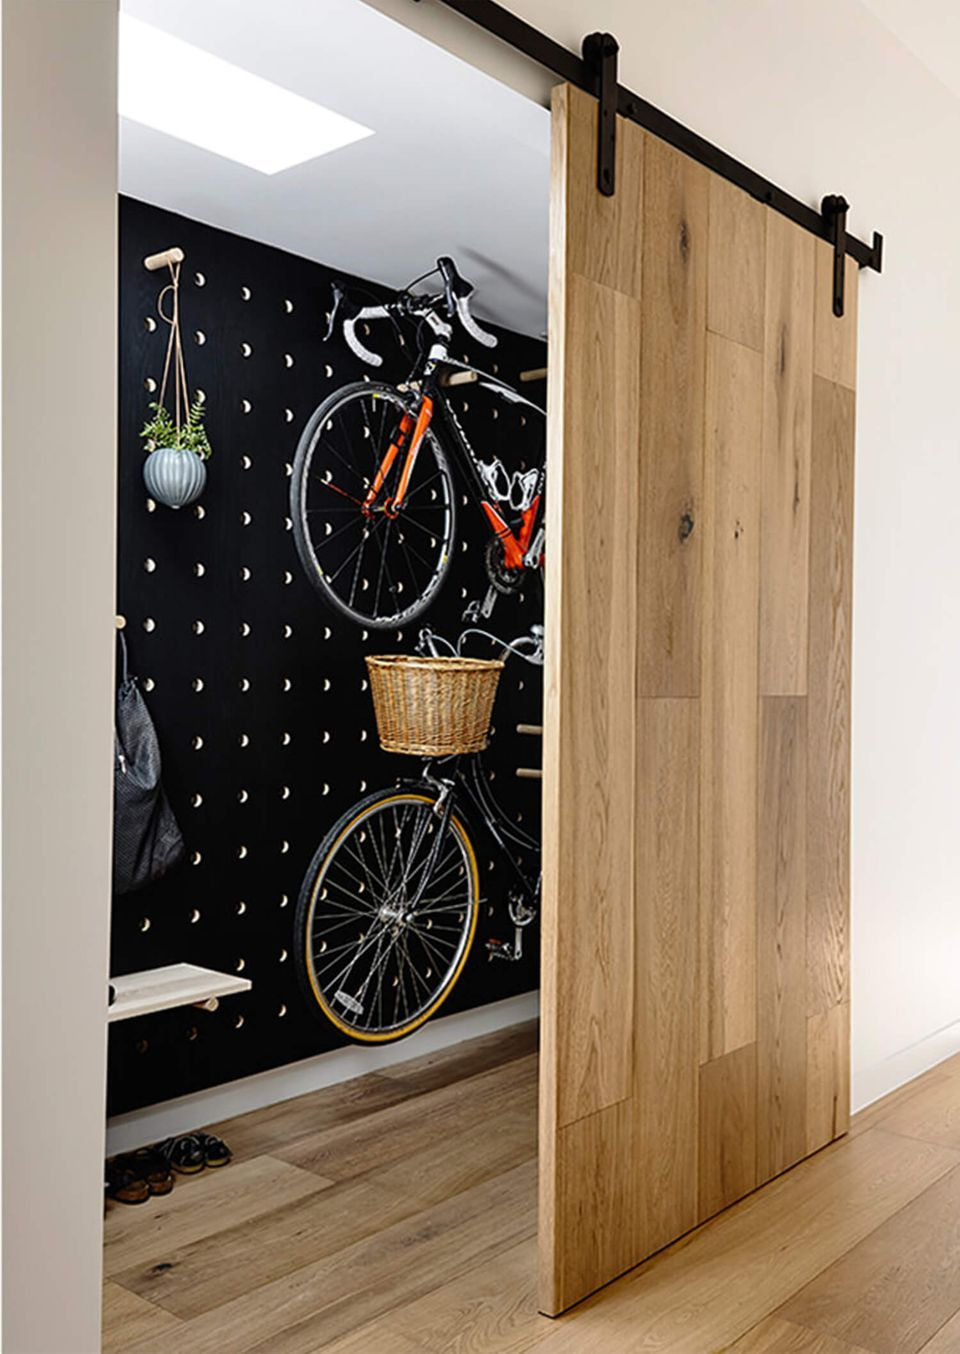 12 beautiful ways to decorate with barn doors in your home on garage organization ideas that will save you space keeping things simple id=34008